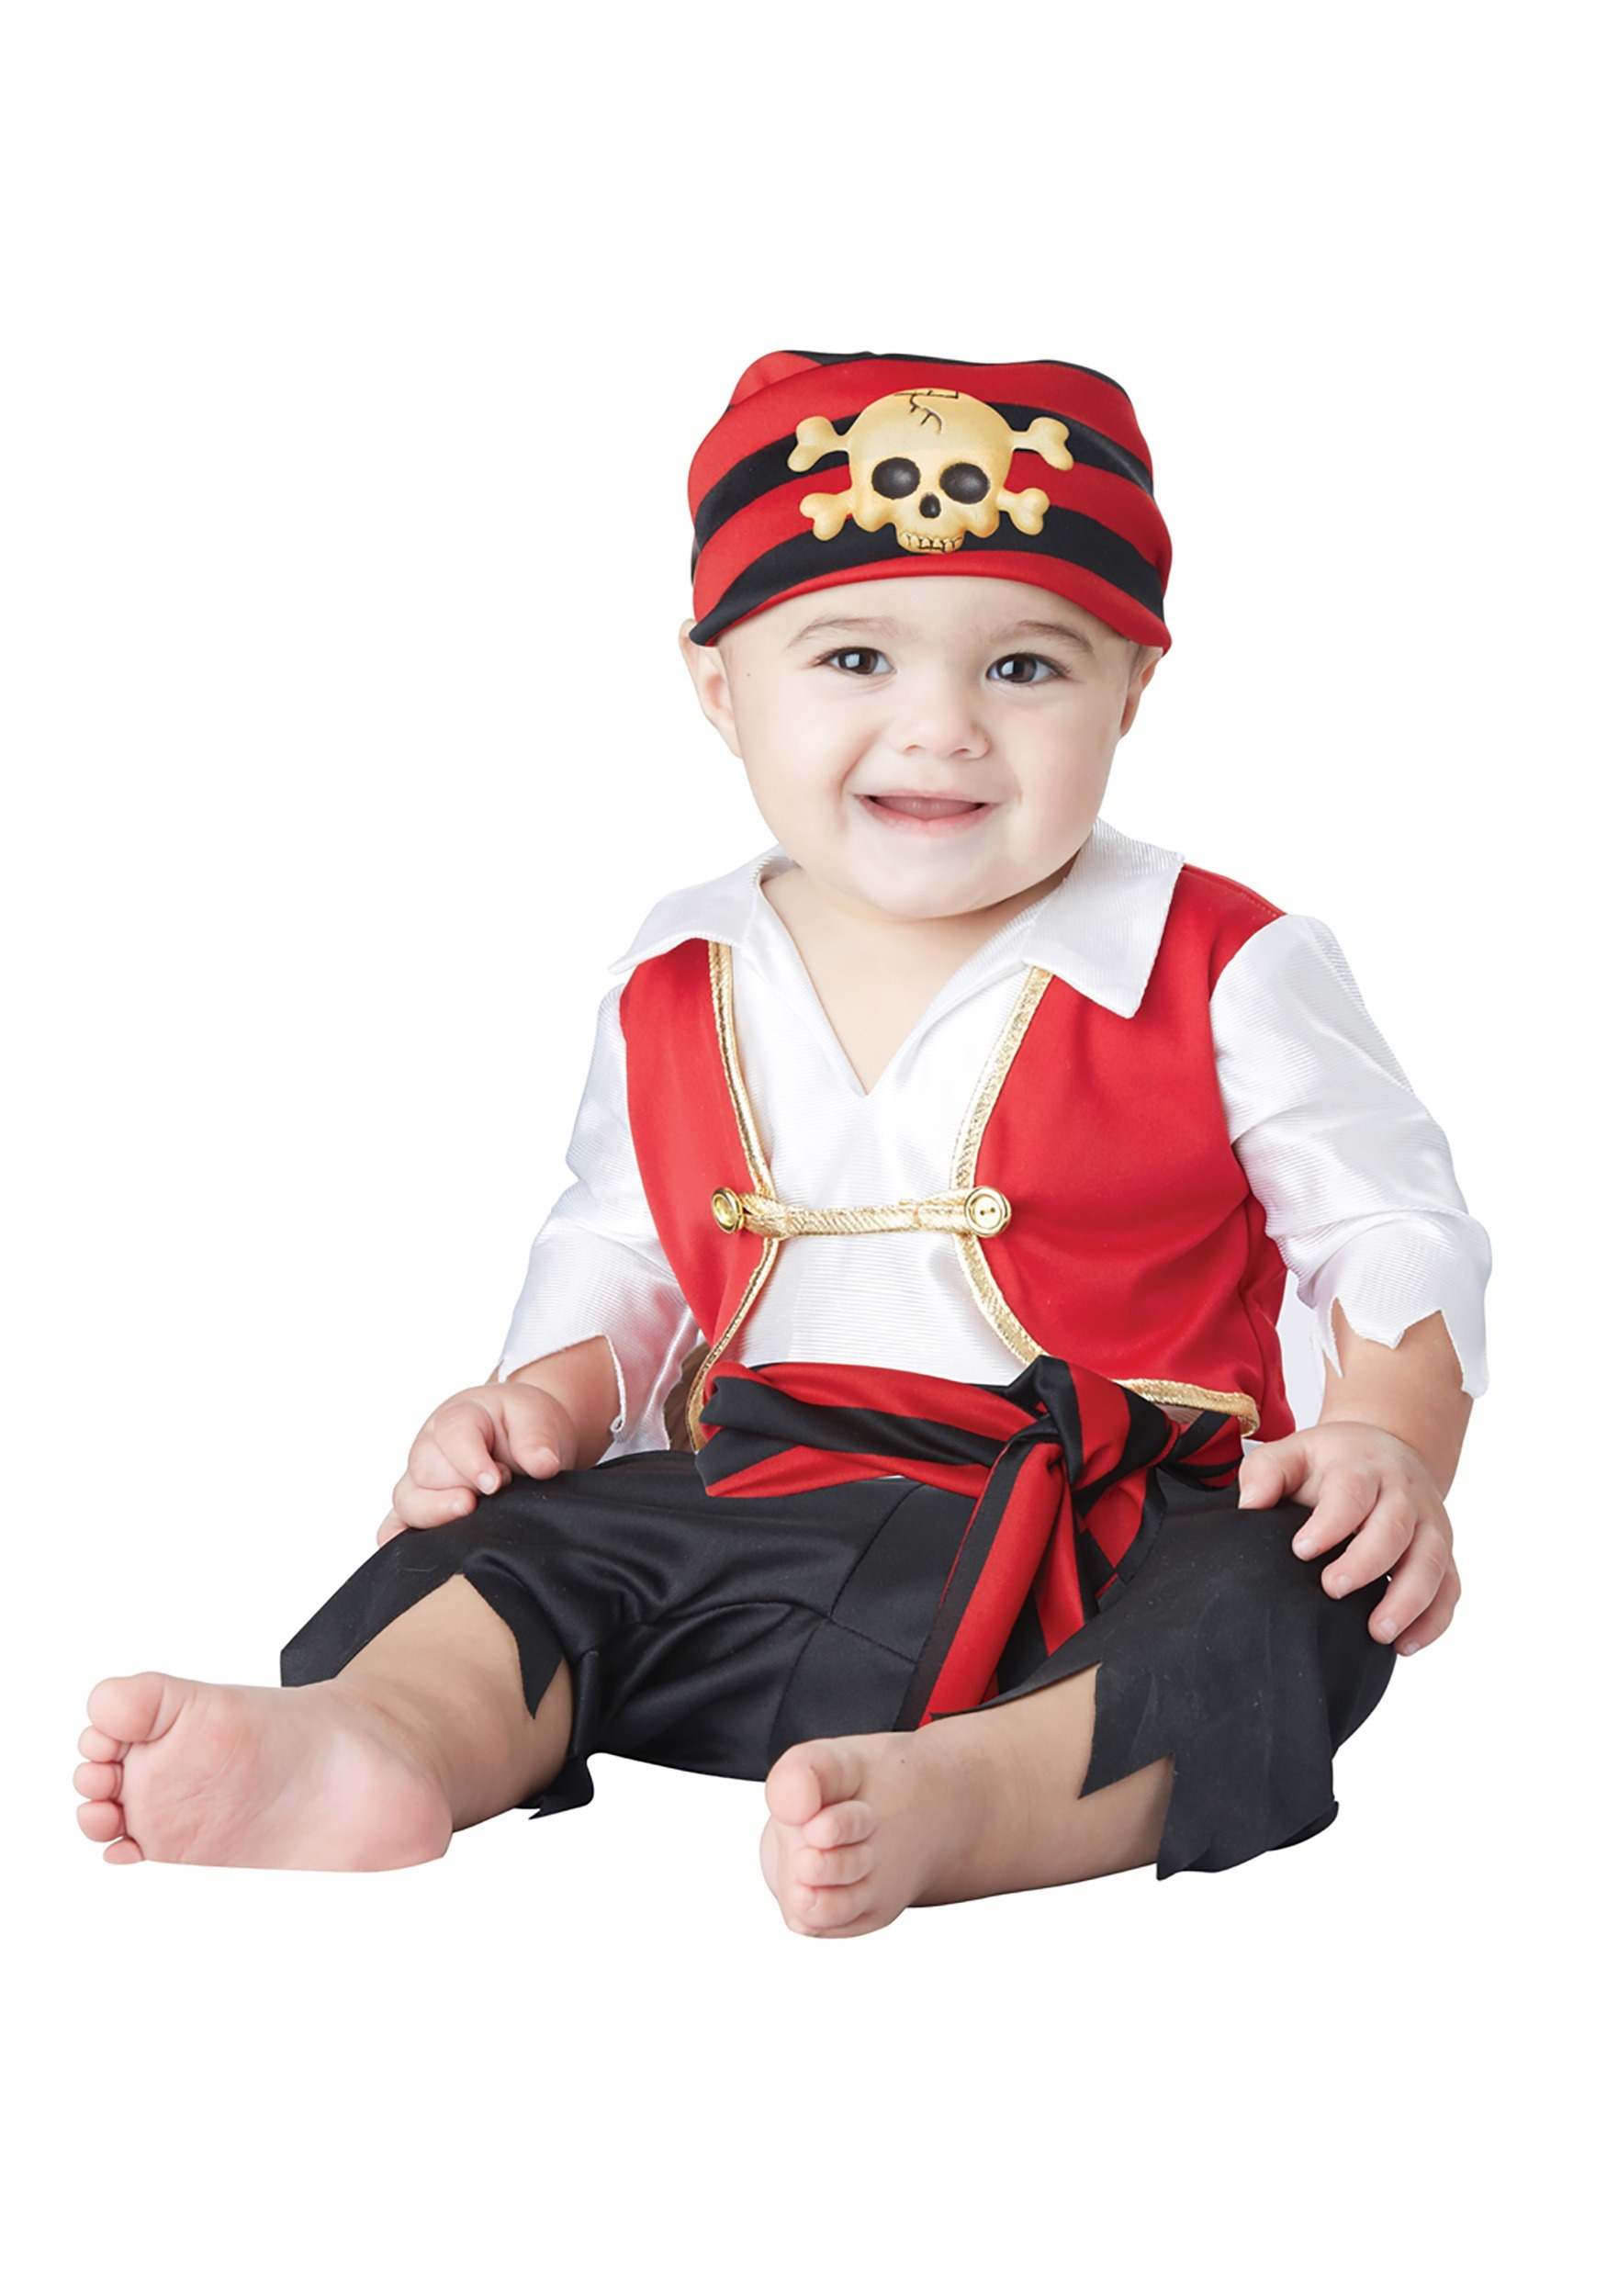 CK912 Pee Wee Pirate Infant Toddler Boys Kid Child Fancy